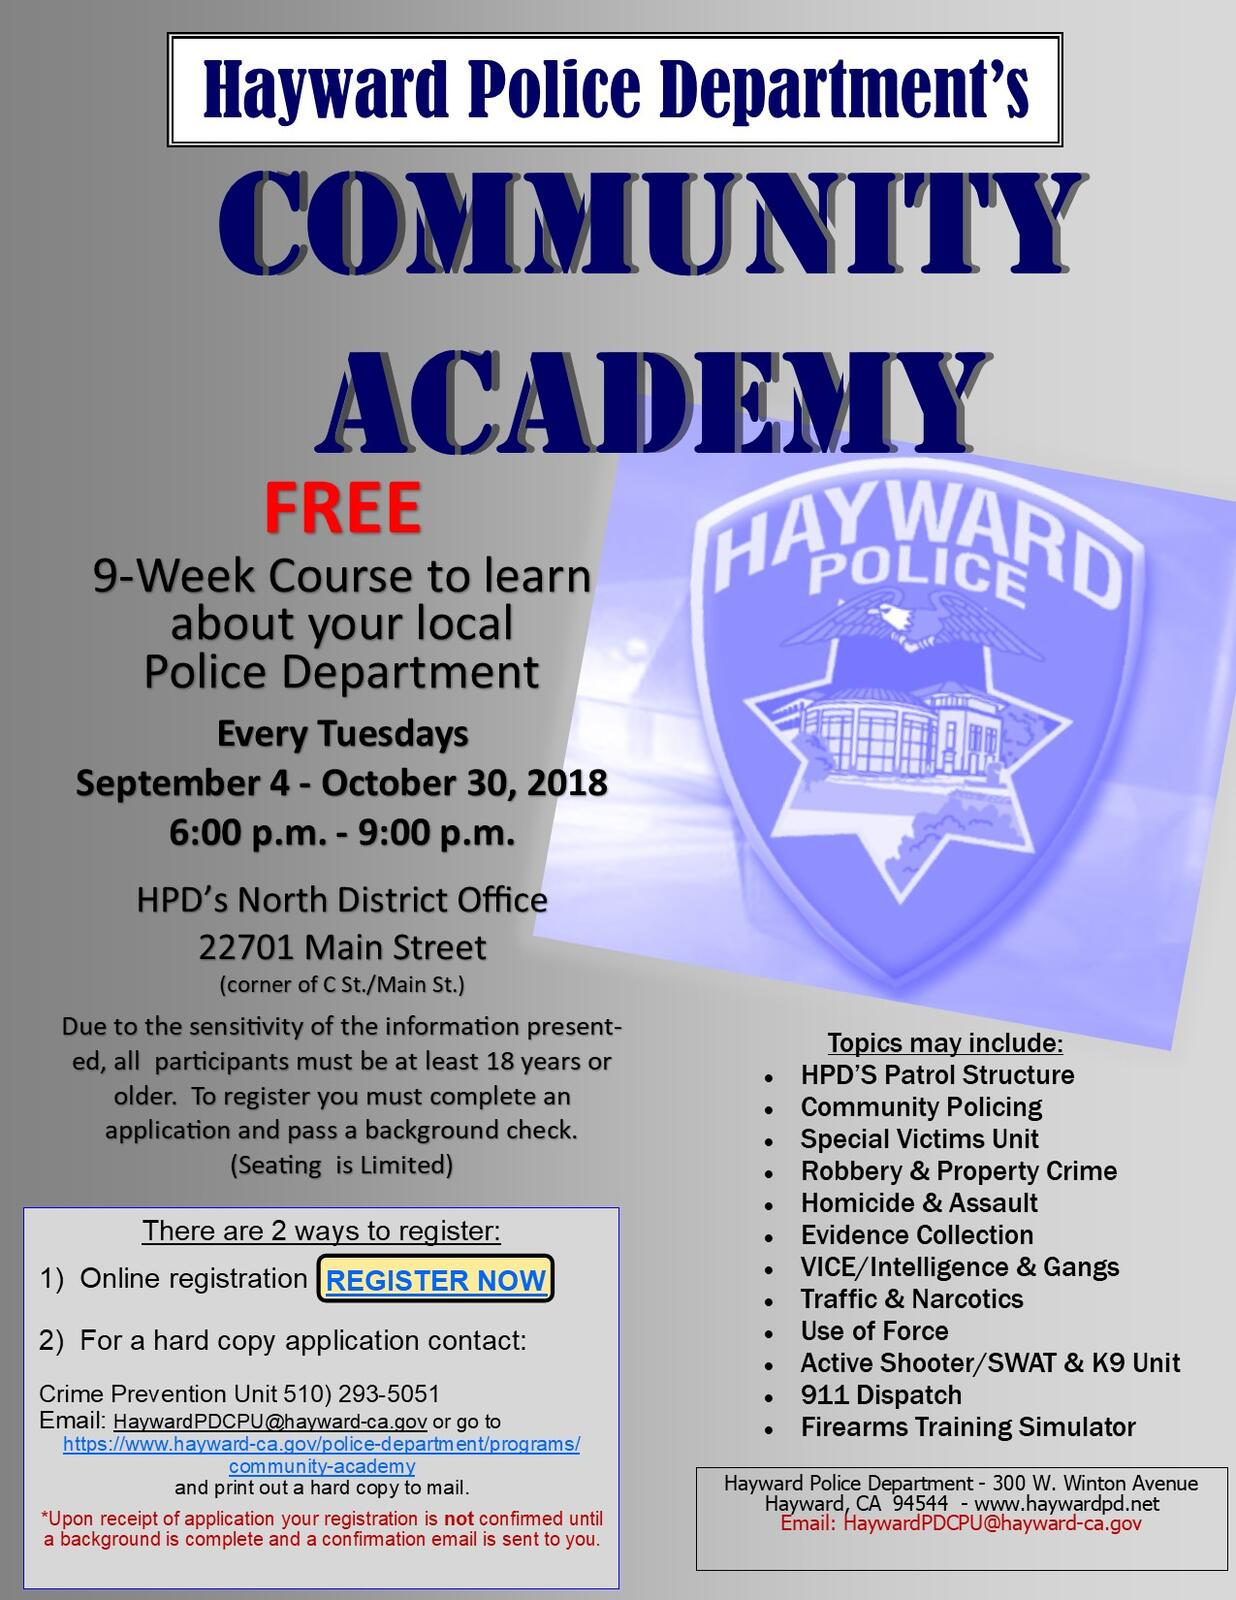 REGISTER NOW! HPD COMMUNITY ACADEMY (Hayward Police Department